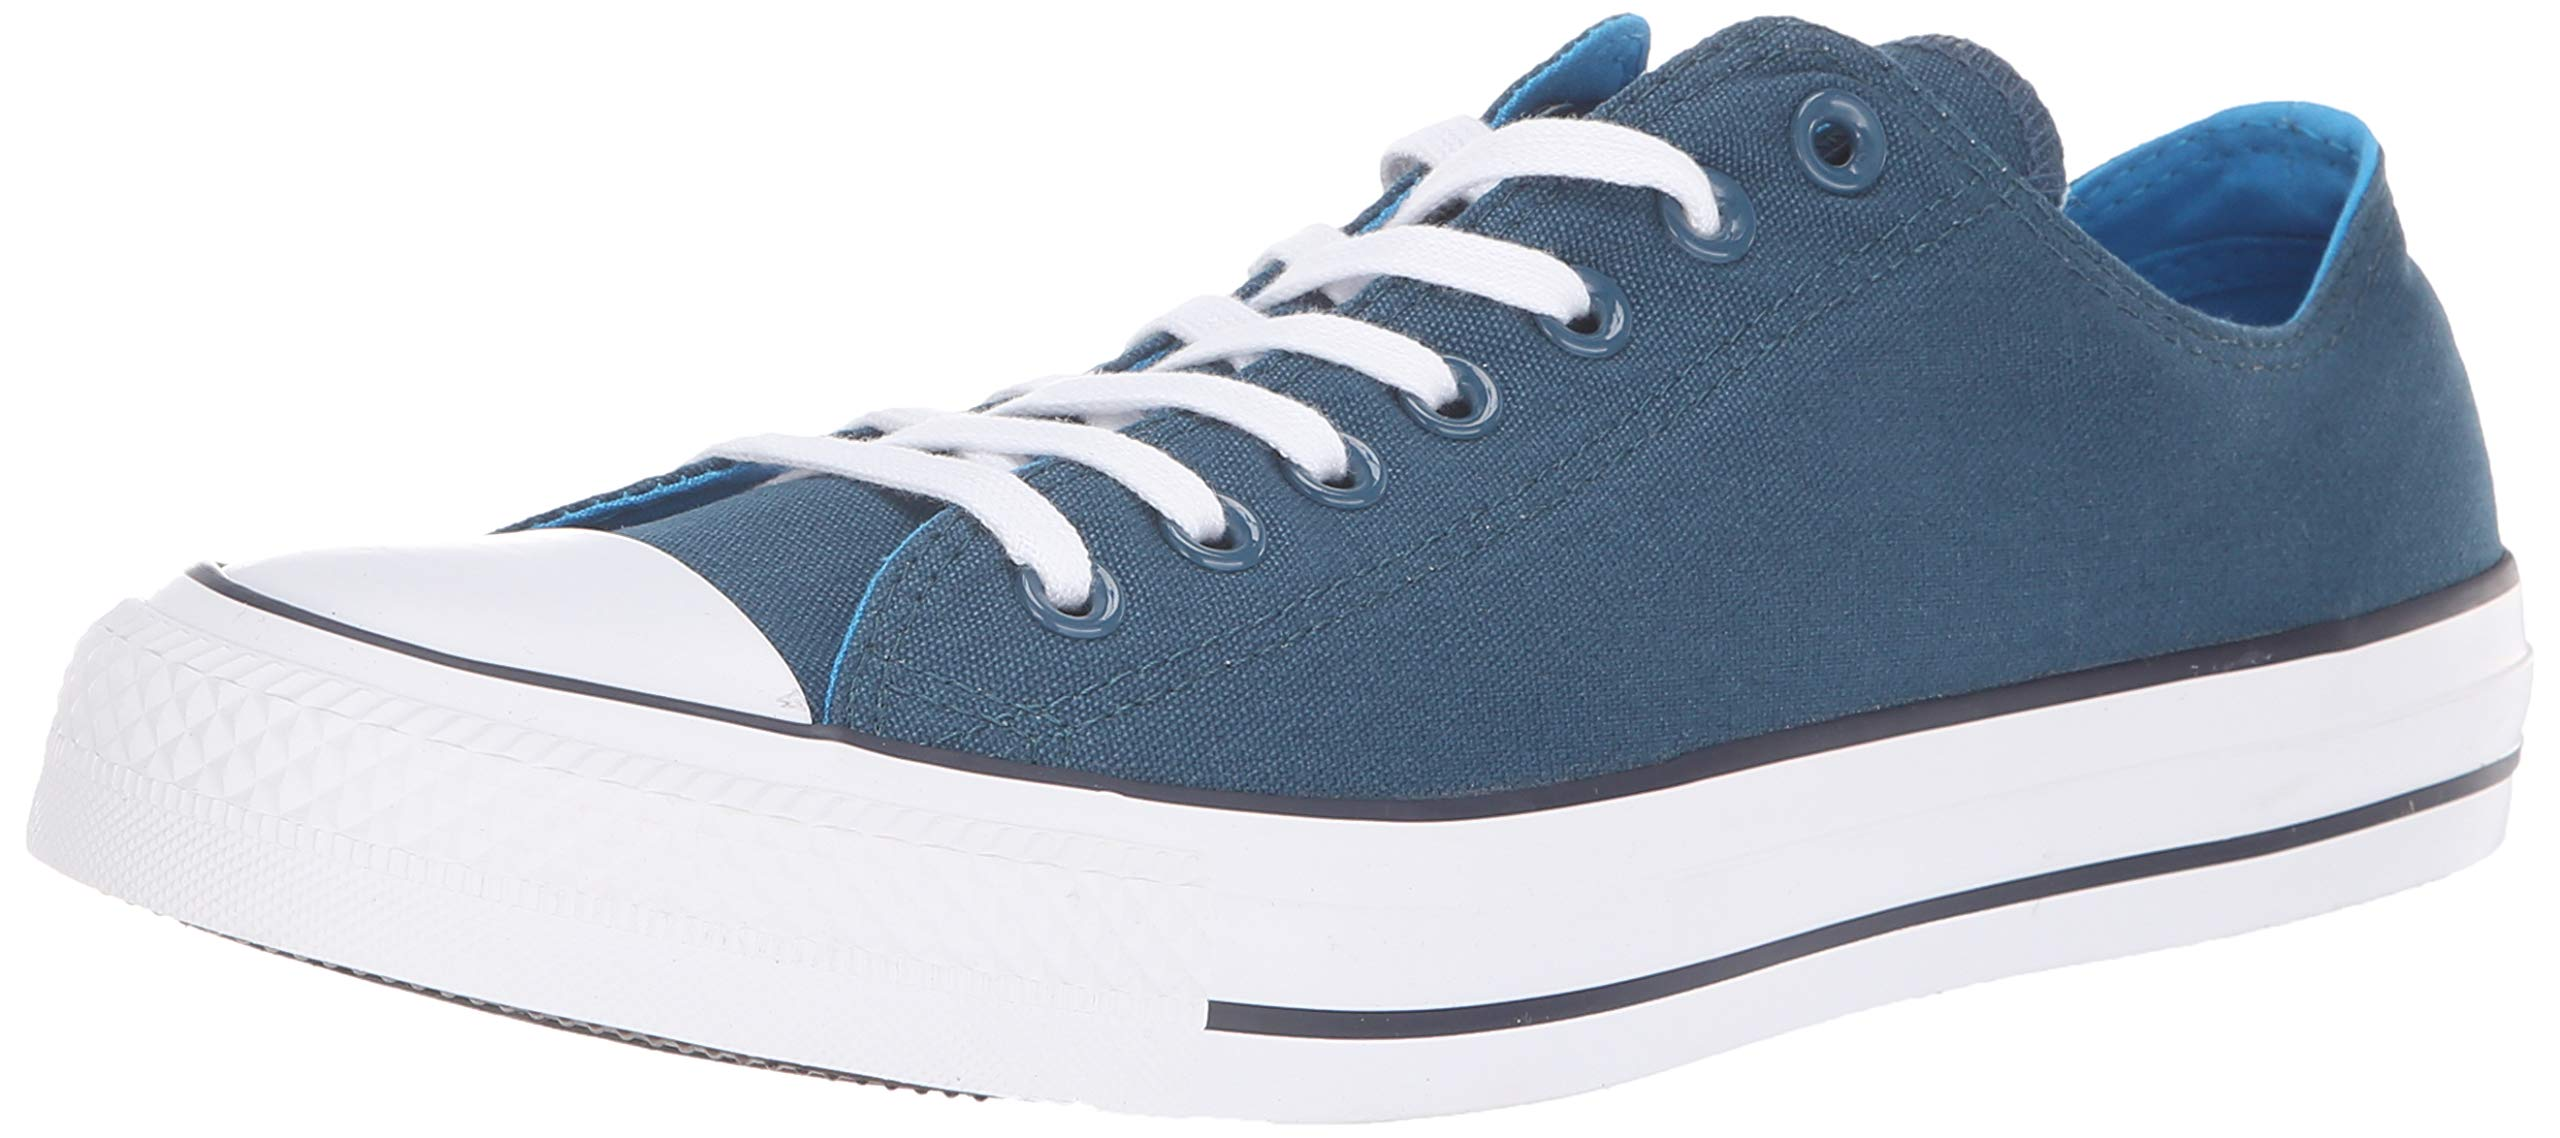 5562342dd91fc Galleon - Converse Women s Chuck Taylor All Star 2018 Seasonal Low Top  Sneaker